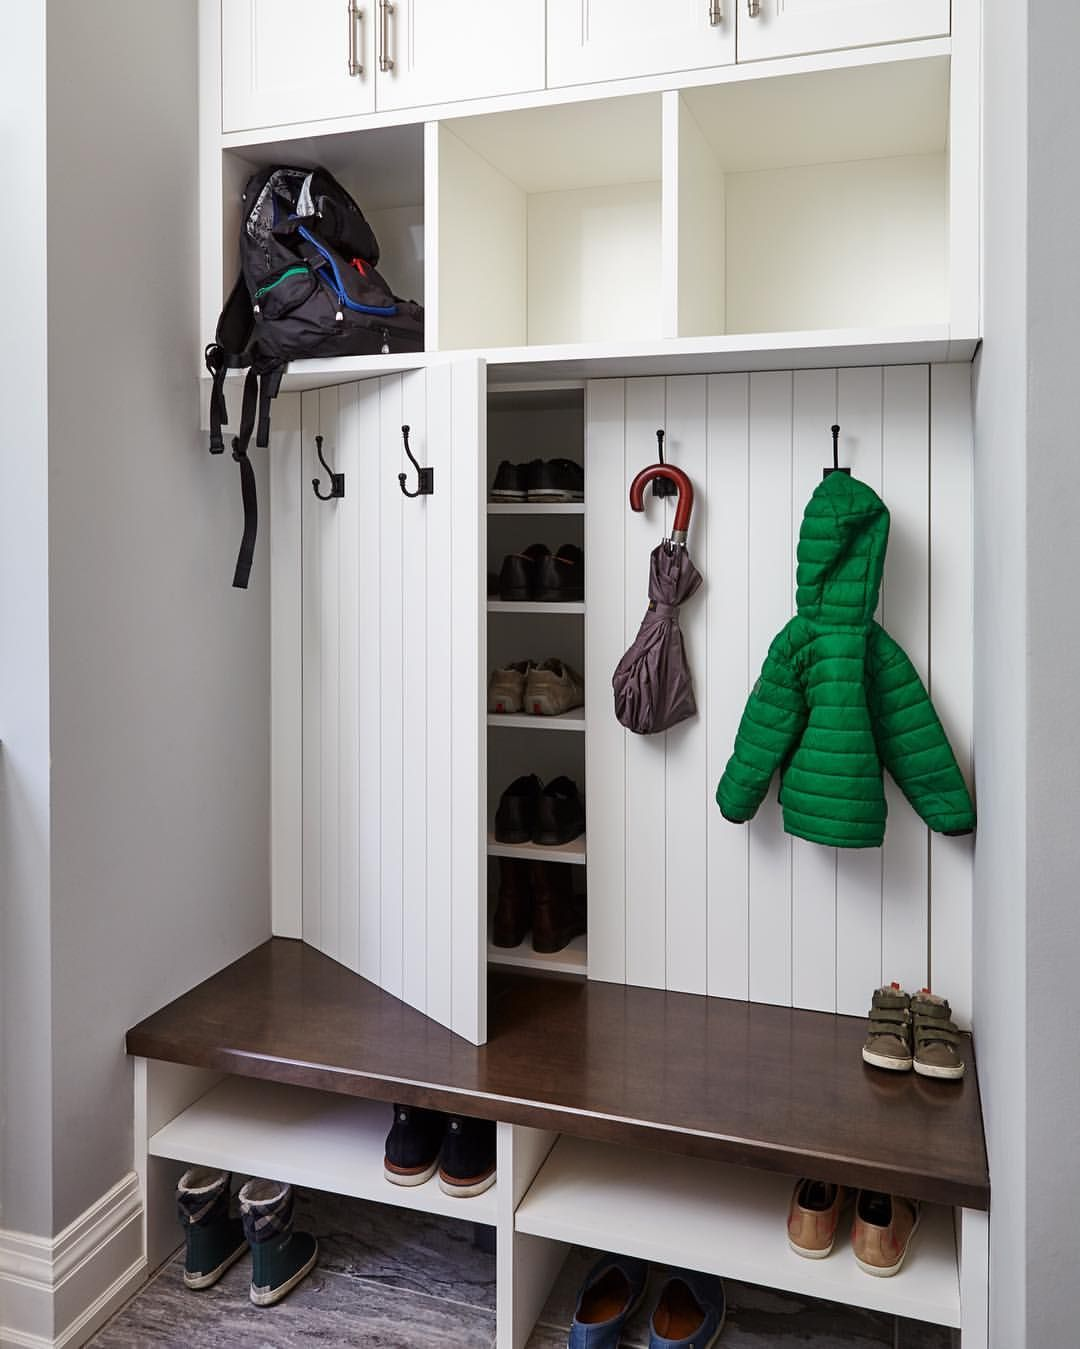 Our Creative Mudroom Design Features Hidden Shoe Storage Cabinets